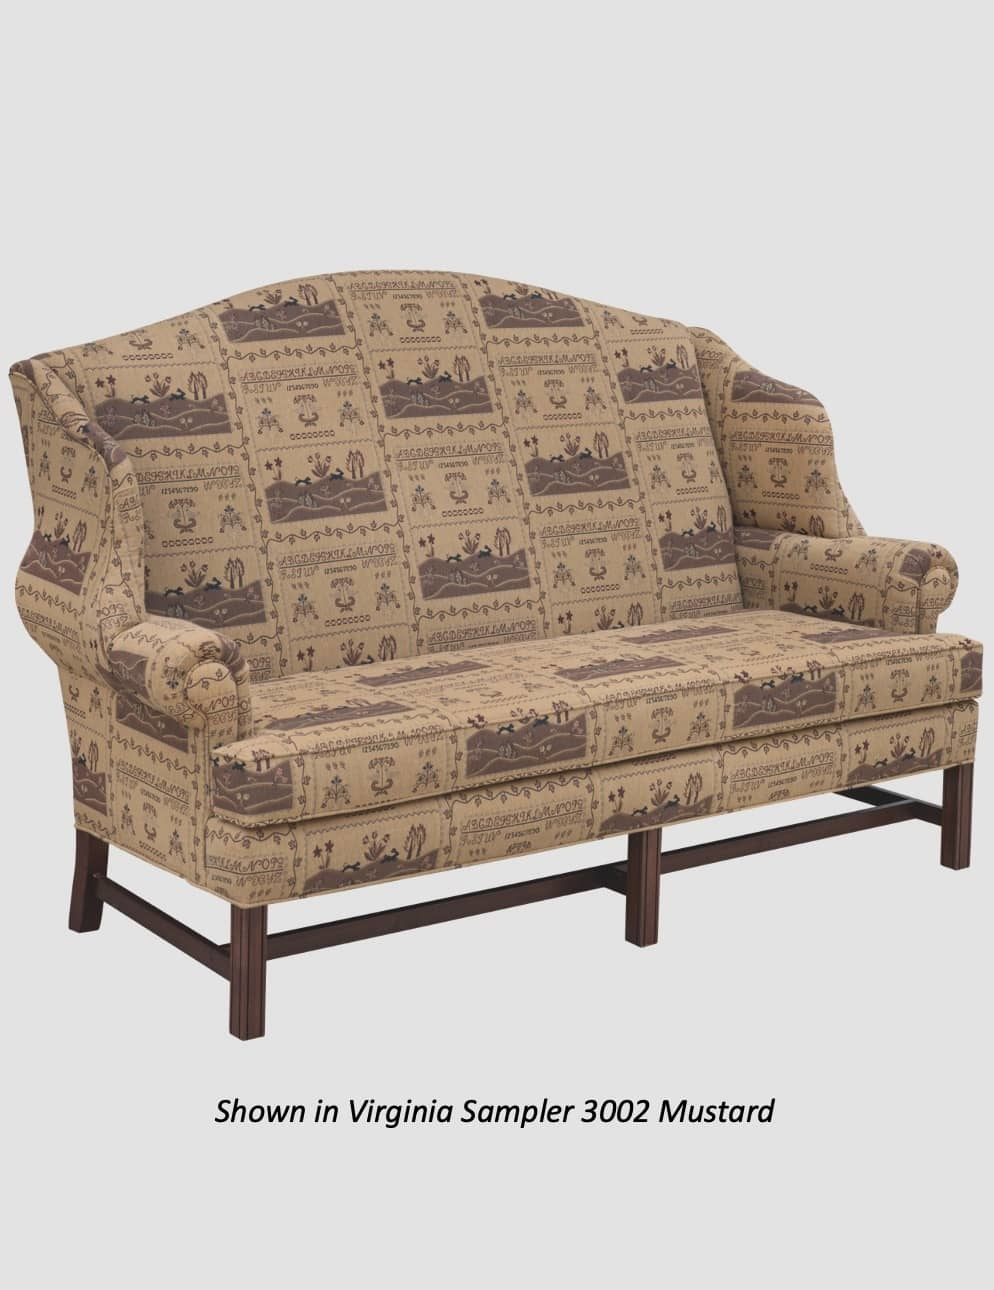 Town & Country Furnishings Vermont Sofa from the American Country Collection